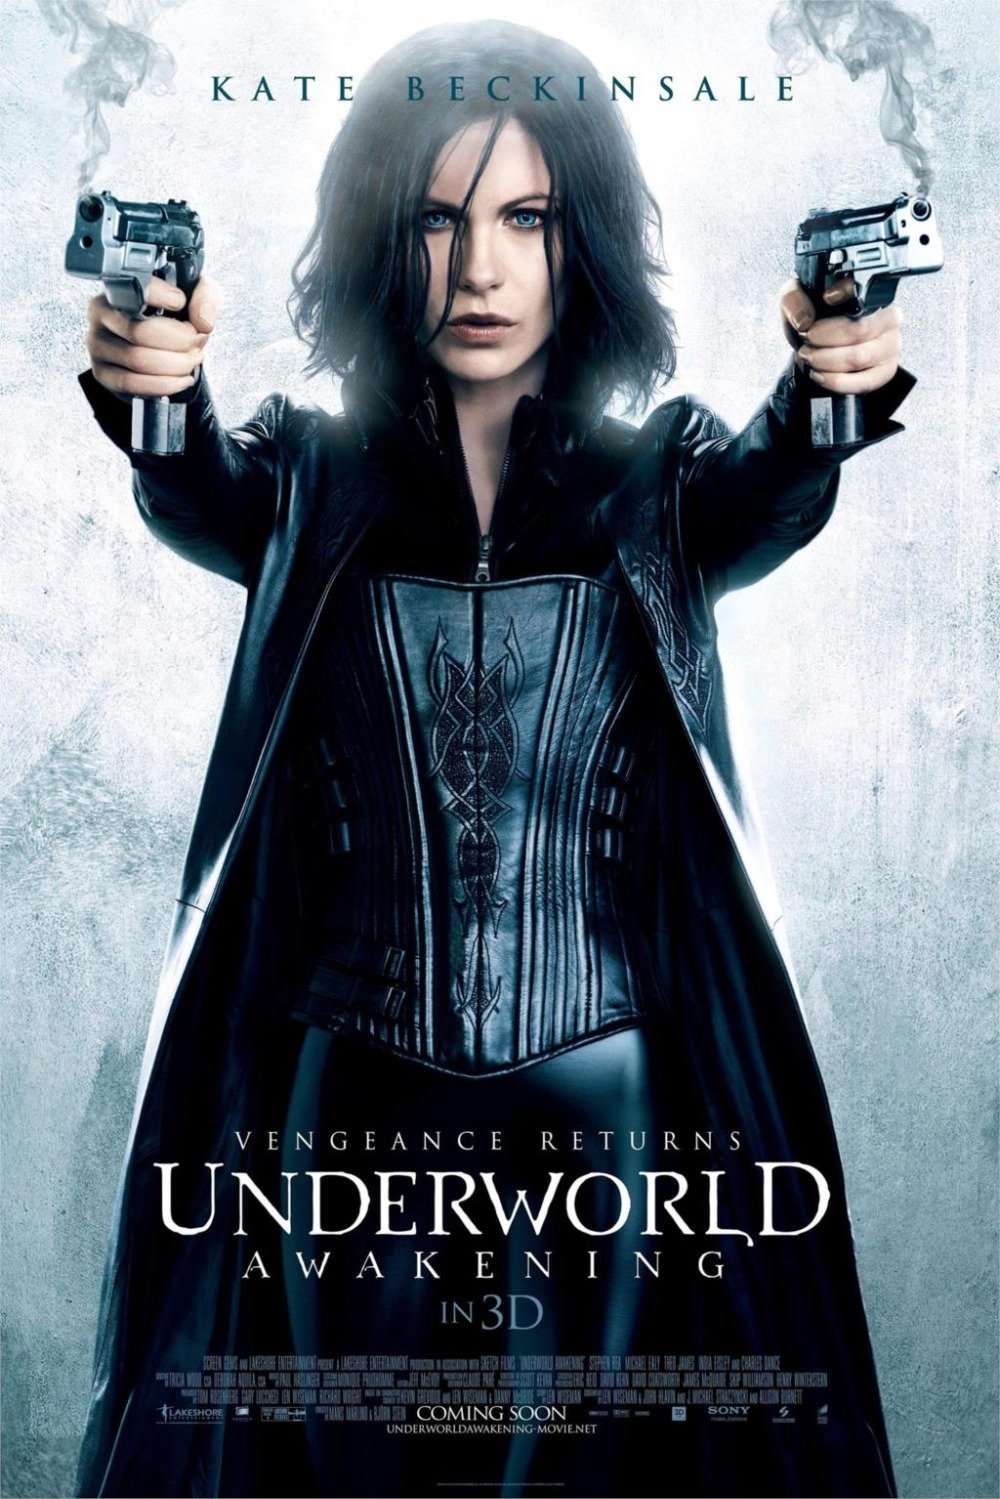 Underworld: Awakening Movie Classic Poster Silk Wall Home Decorative Painting -Kate Beckinsale